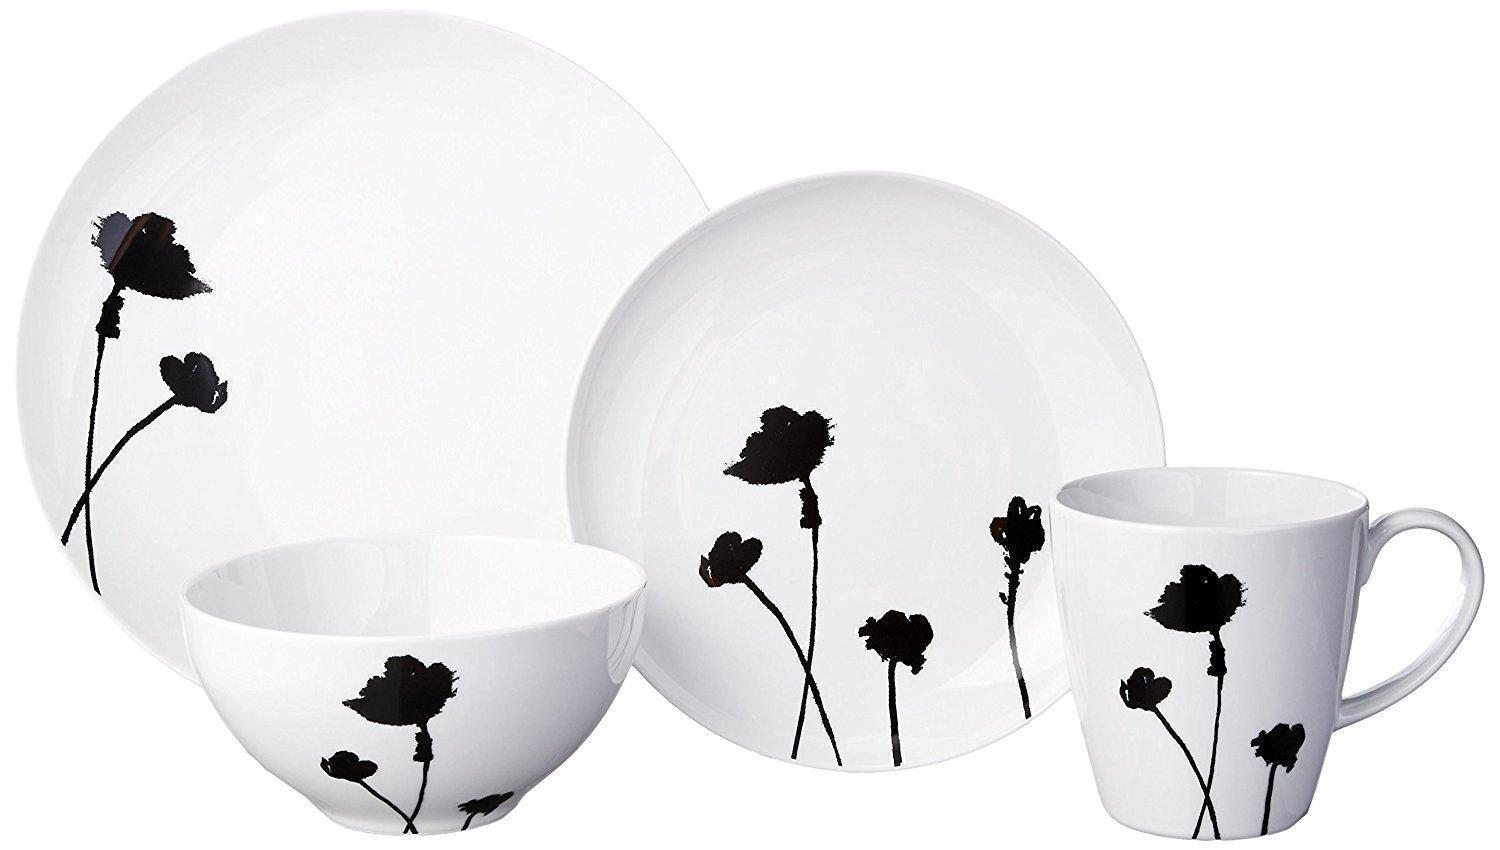 Dansk Lotta Stilla Jansodotter 3 Piece Place Setting - $36.10